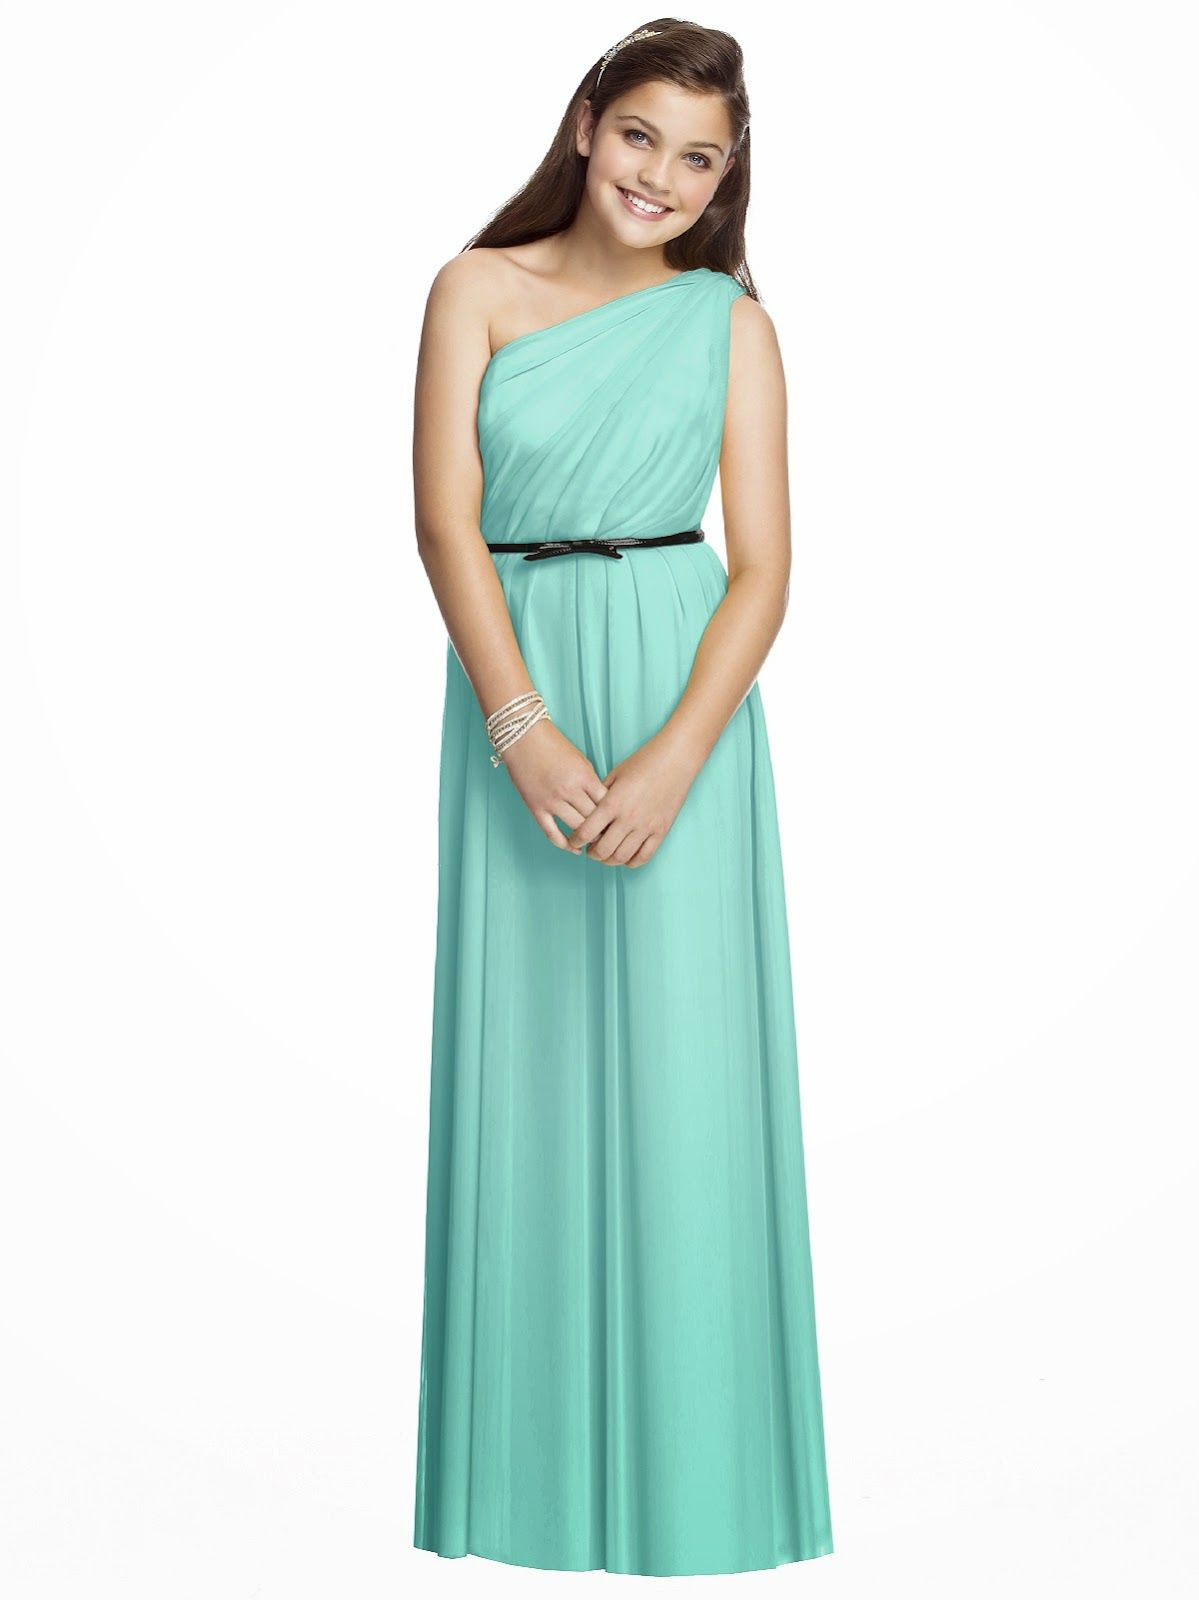 Macys bridesmaid dresses juniors macys bridesmaid dresses juniors 44 ombrellifo Images